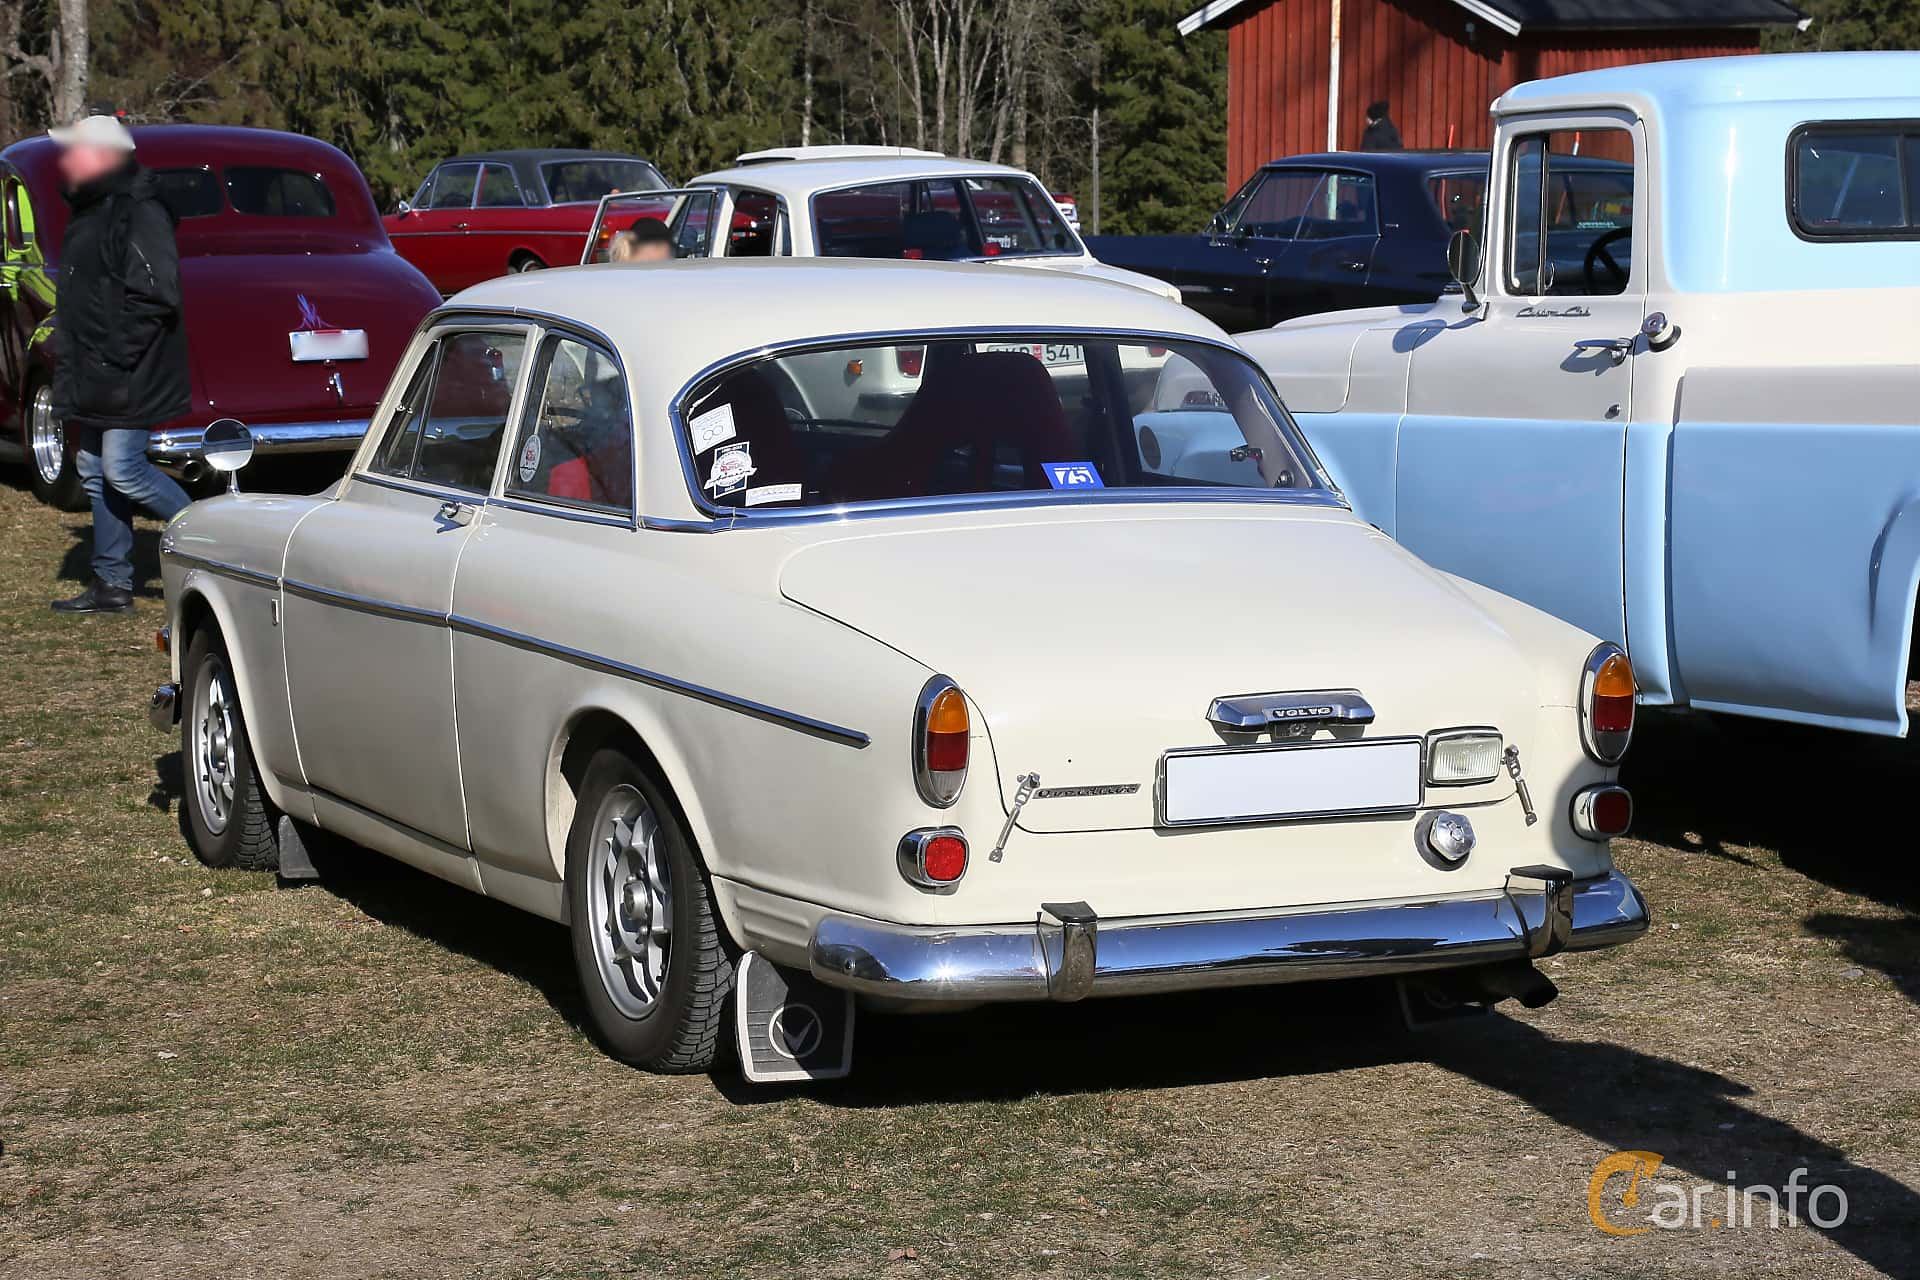 Back/Side of Volvo Amazon 121 P130 1.8 Manual, 75ps, 1968 at Uddevalla Veteranbilsmarknad Backamo, Ljungsk 2019